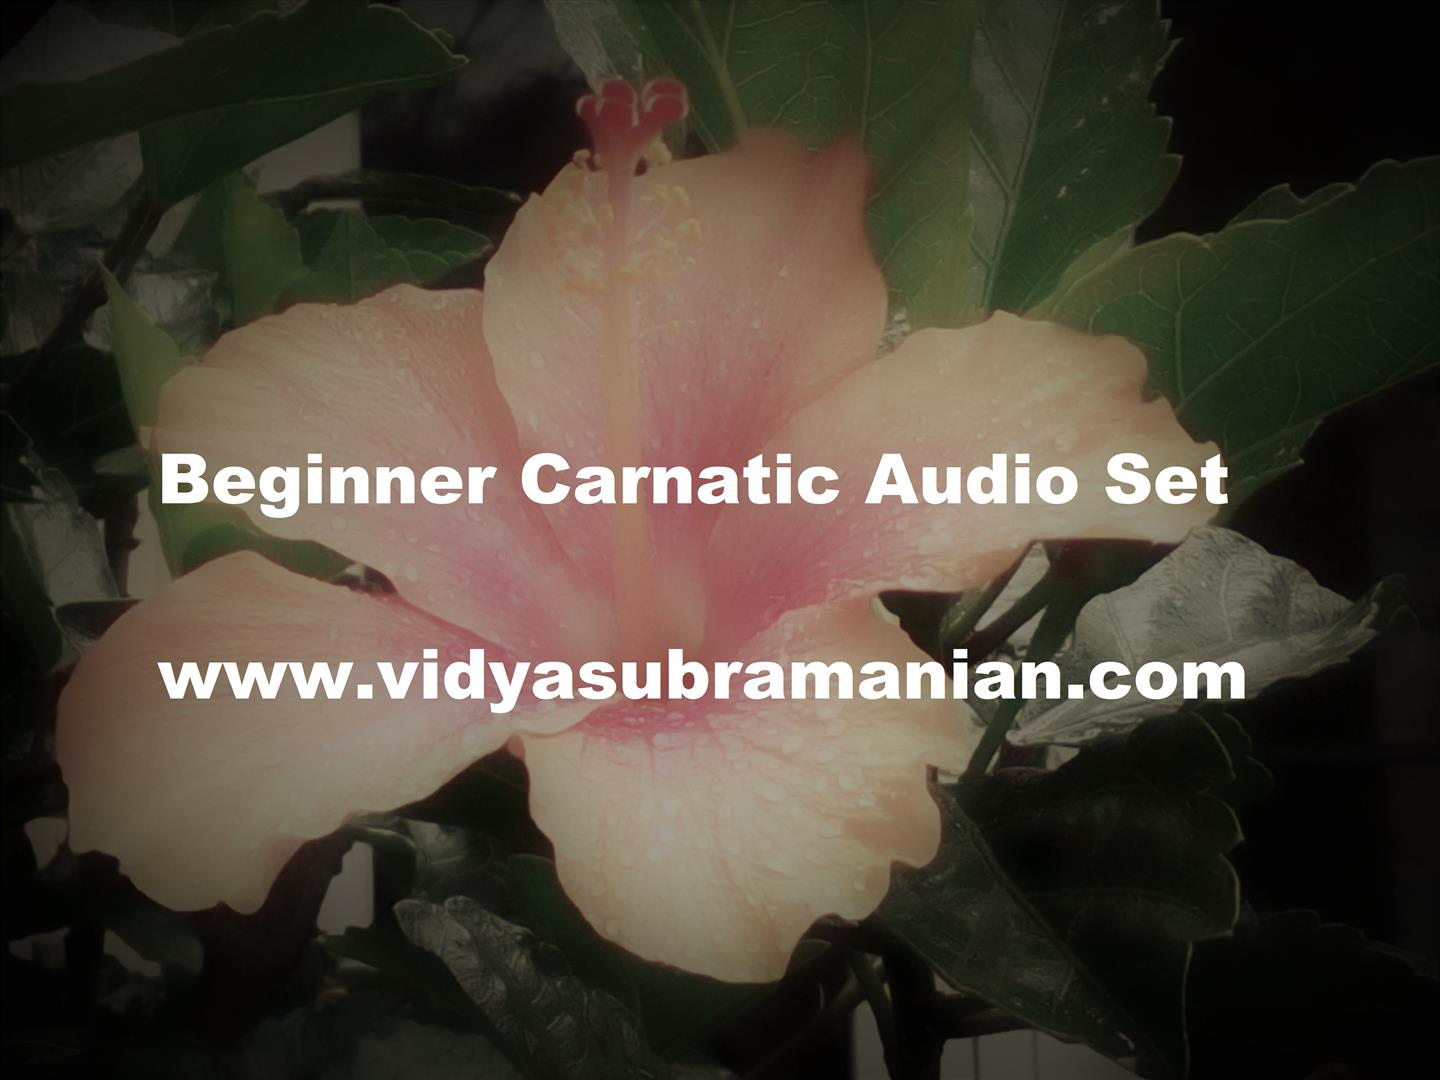 Vidya Subramanian - Customized, Live Online lessons and classes in